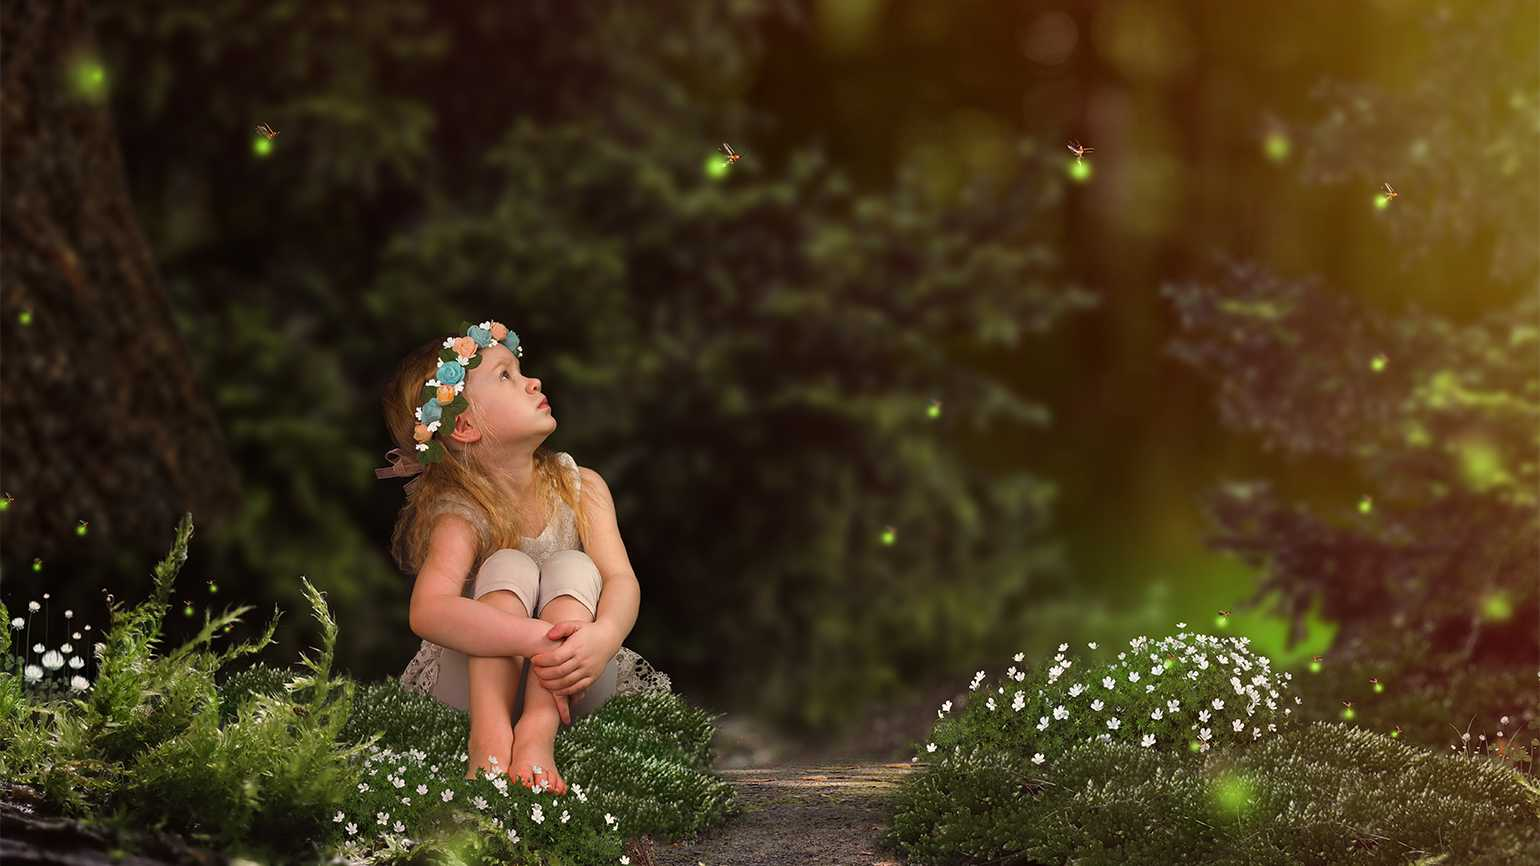 A little girl gazes up in wonder at some fireflies